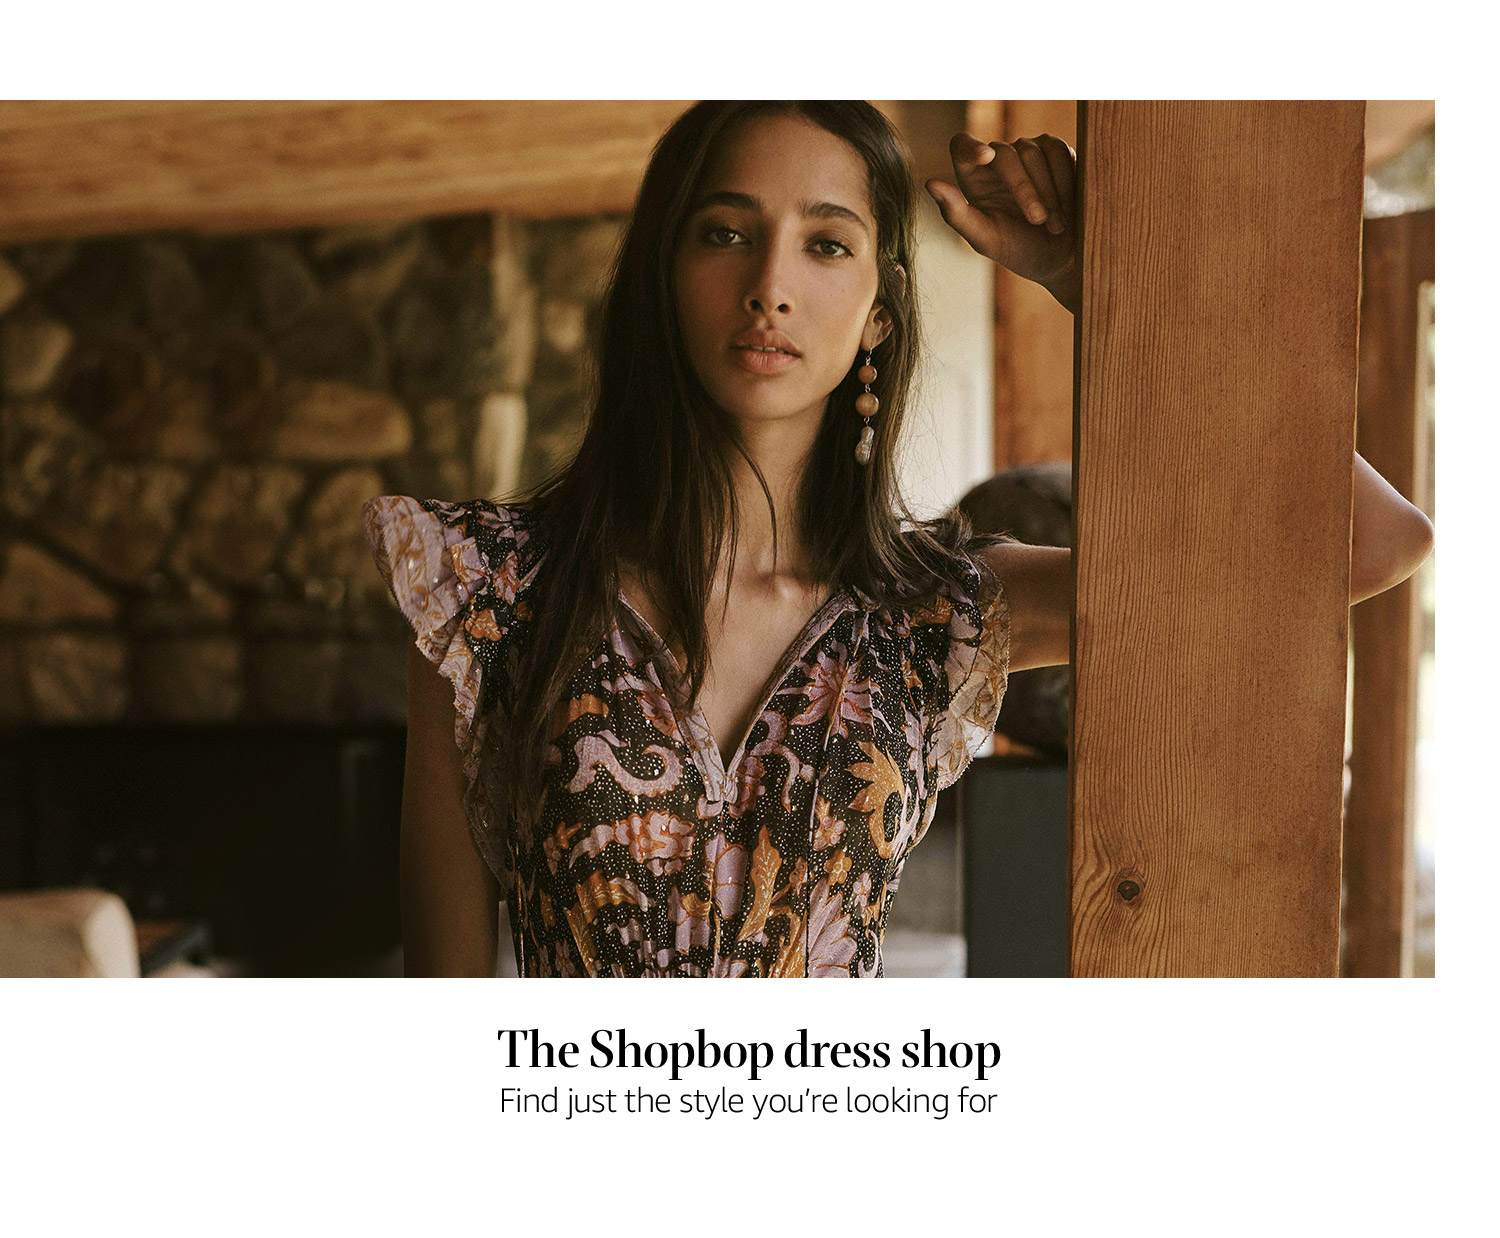 The Shopbop dress shop